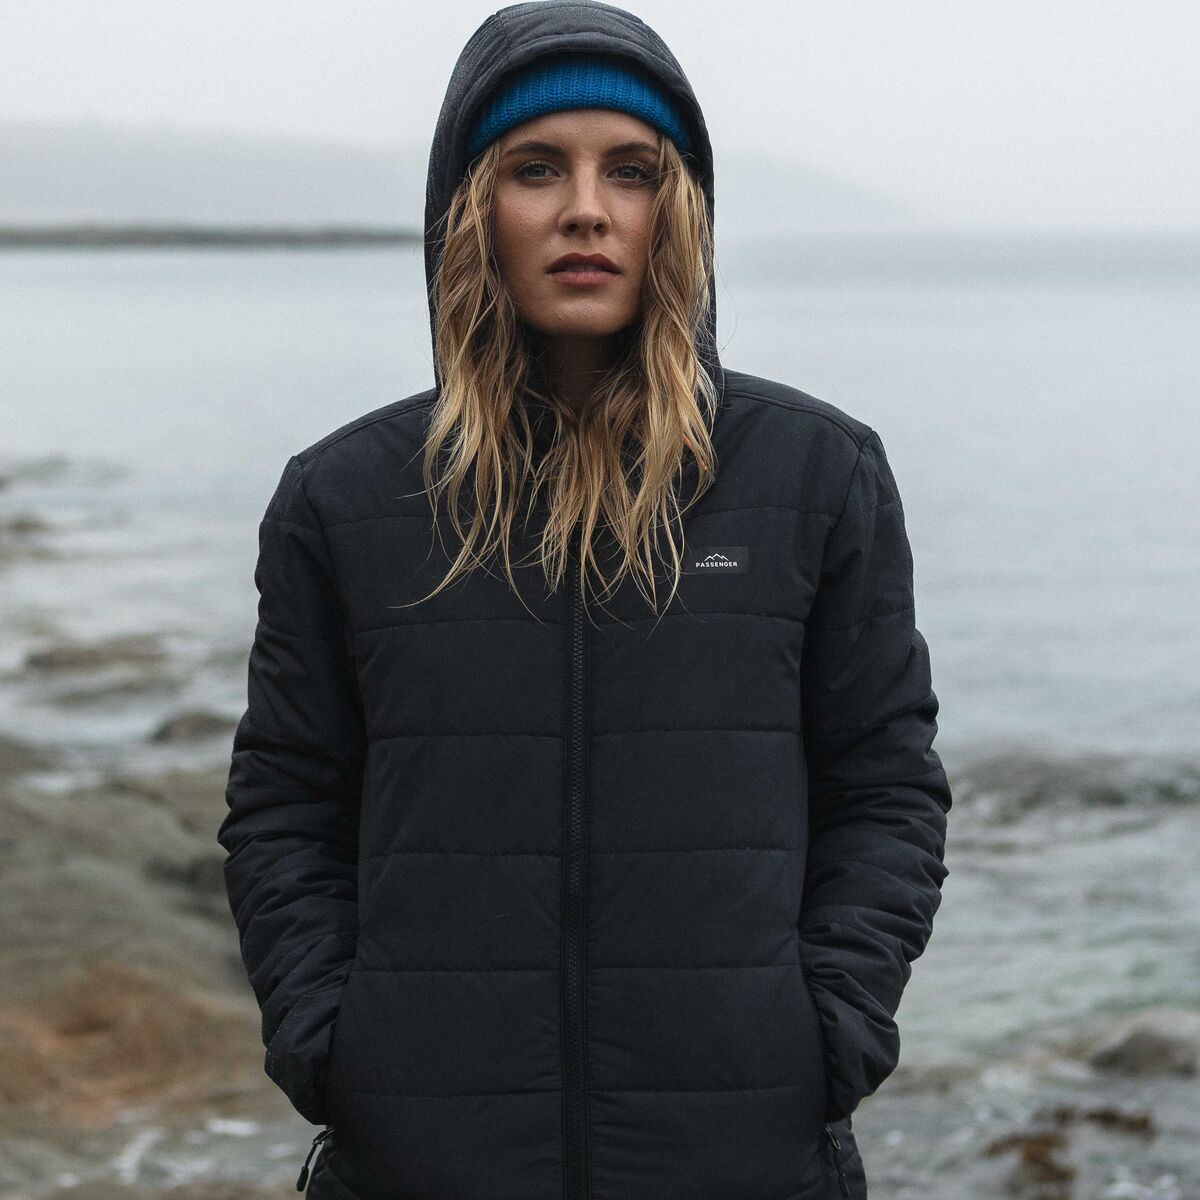 Jackpine Insulated Jacket - Black image 4